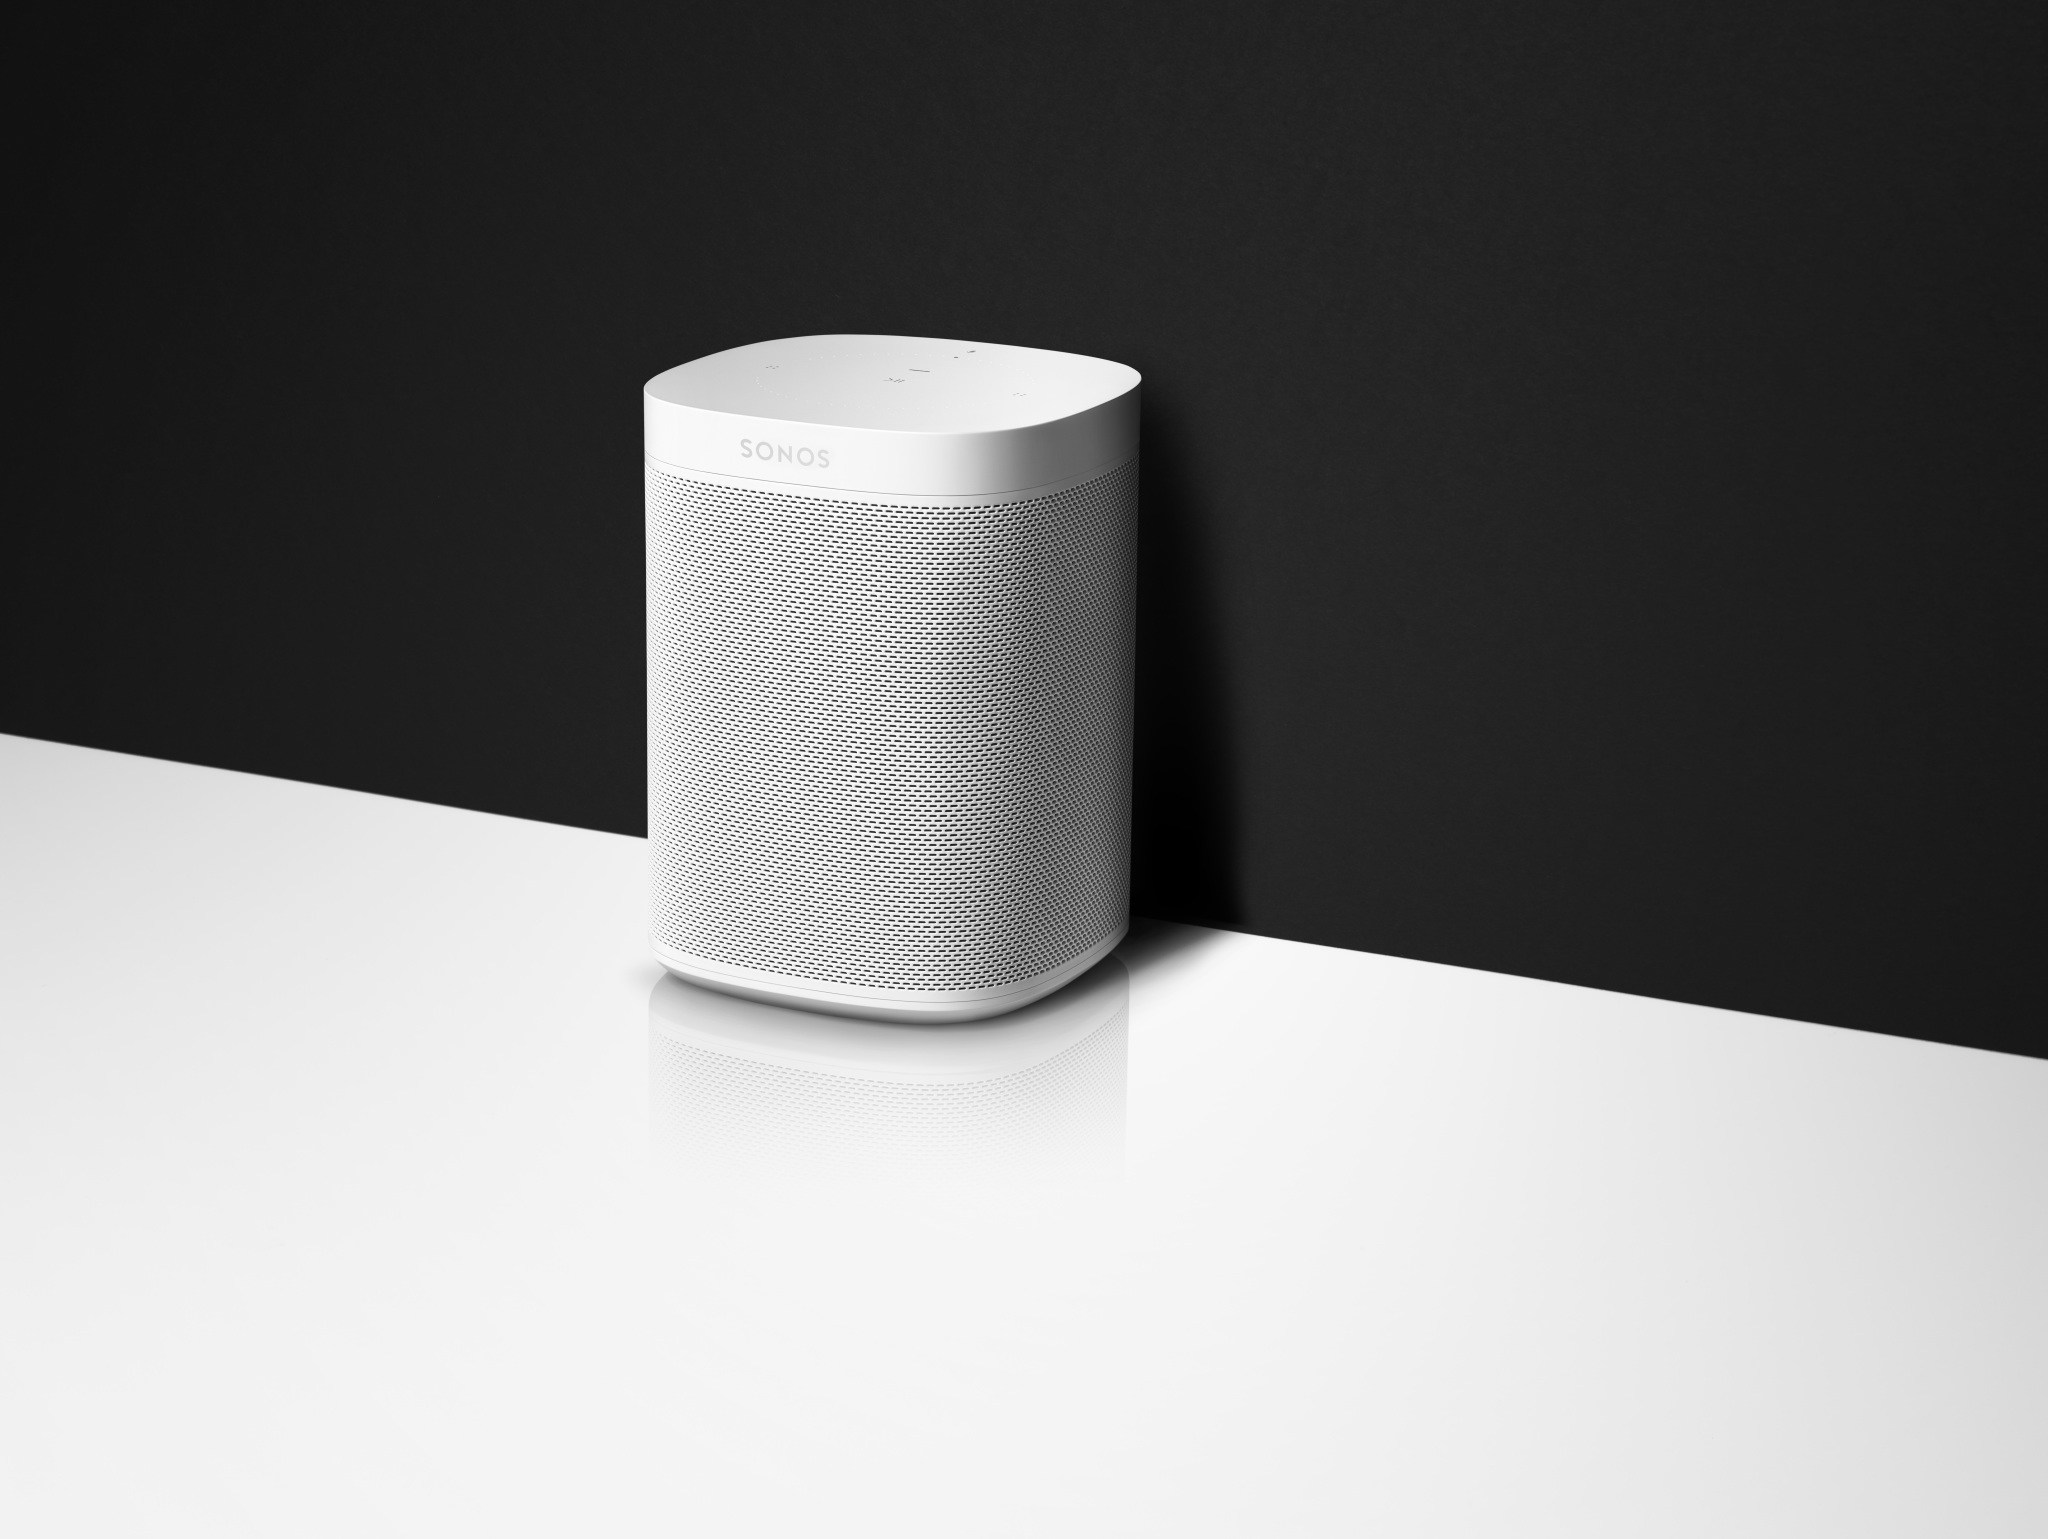 SONOS ONE White on Black White background Home Audio Systems Voice Control